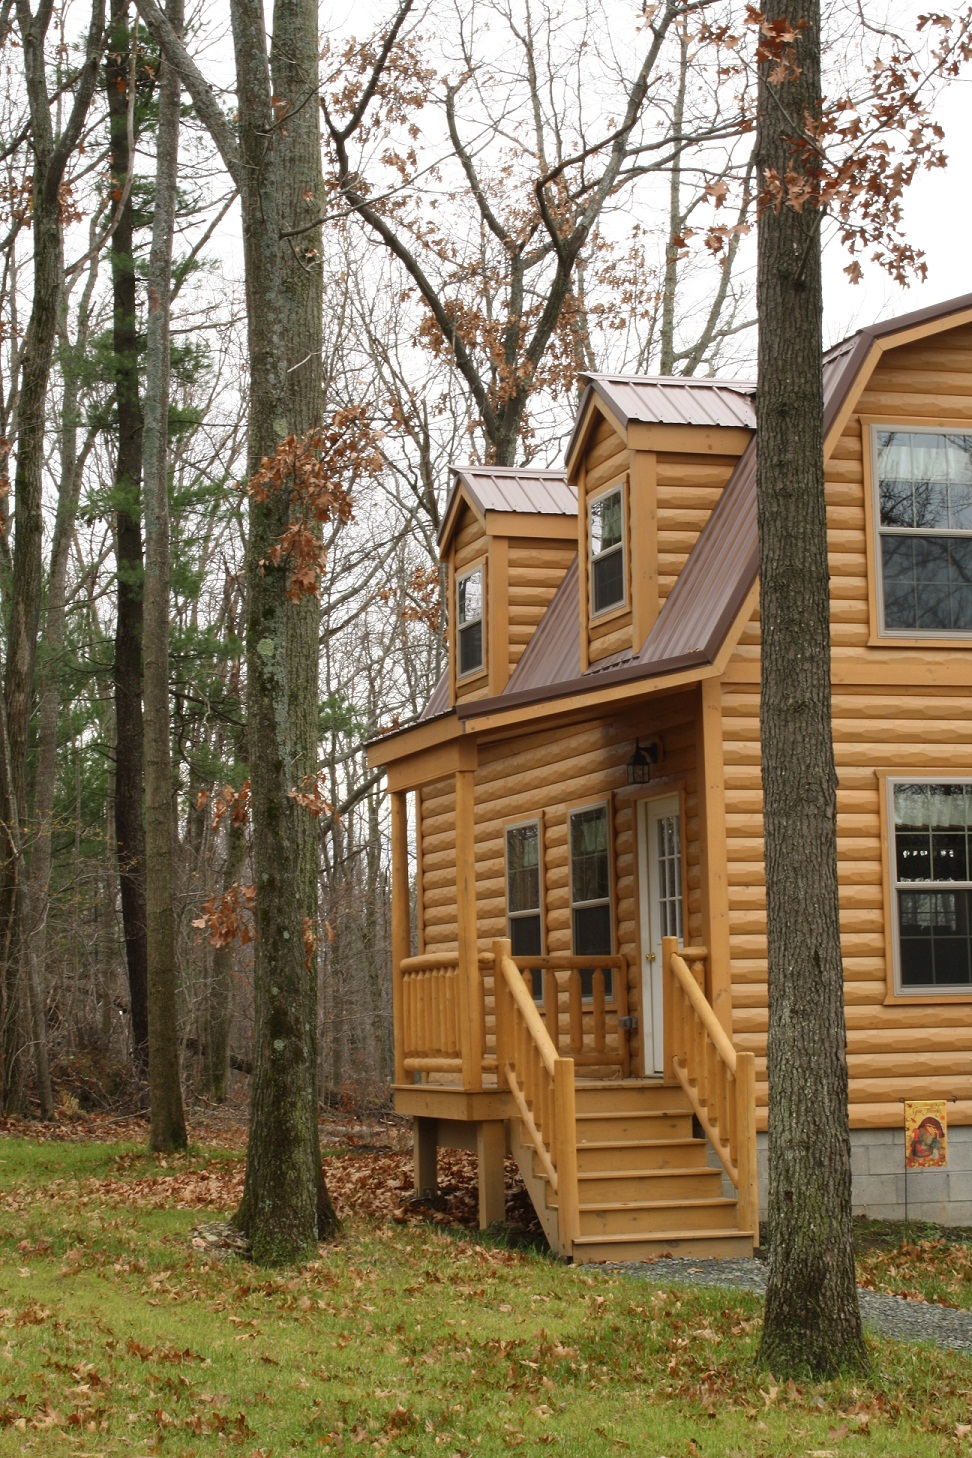 Wood tex products introduces certified modular homes to for Wood cabin homes